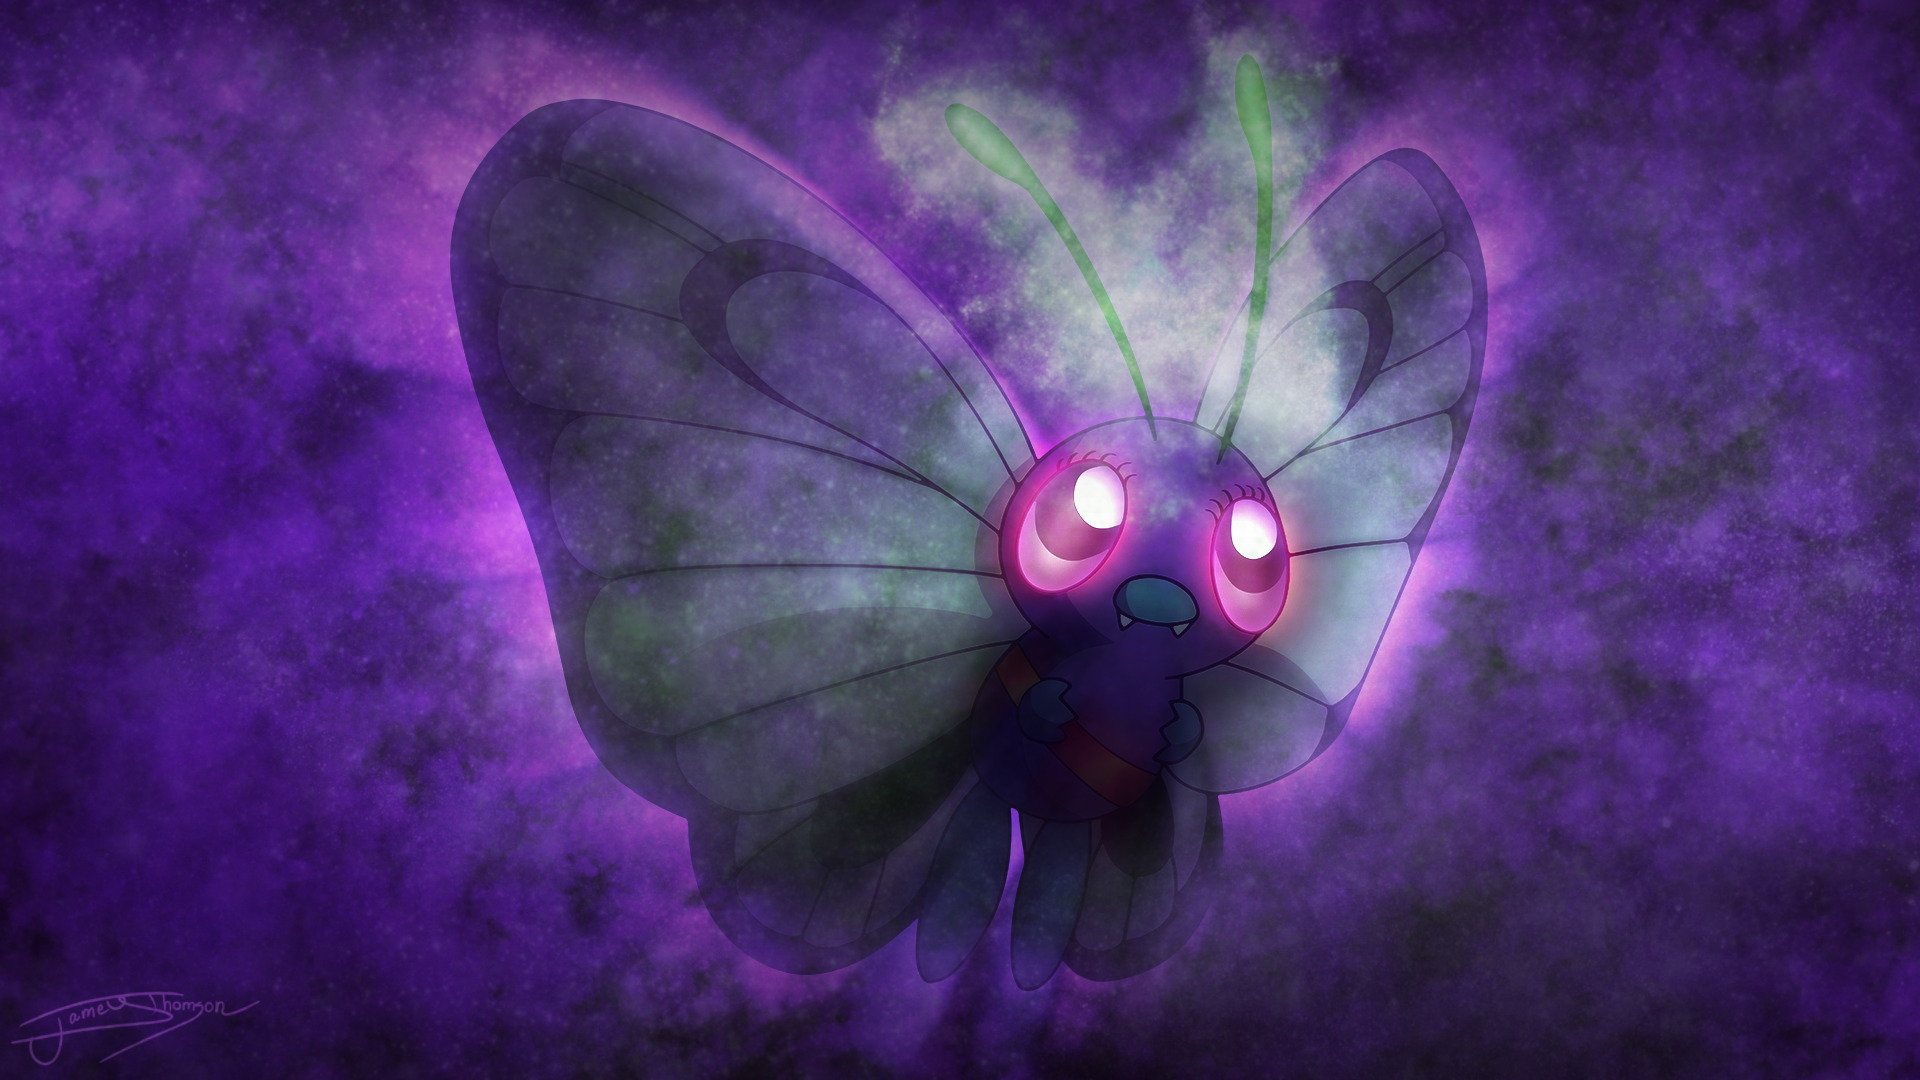 9 Butterfree (Pokemon) HD Wallpapers | Backgrounds - Wallpaper Abyss